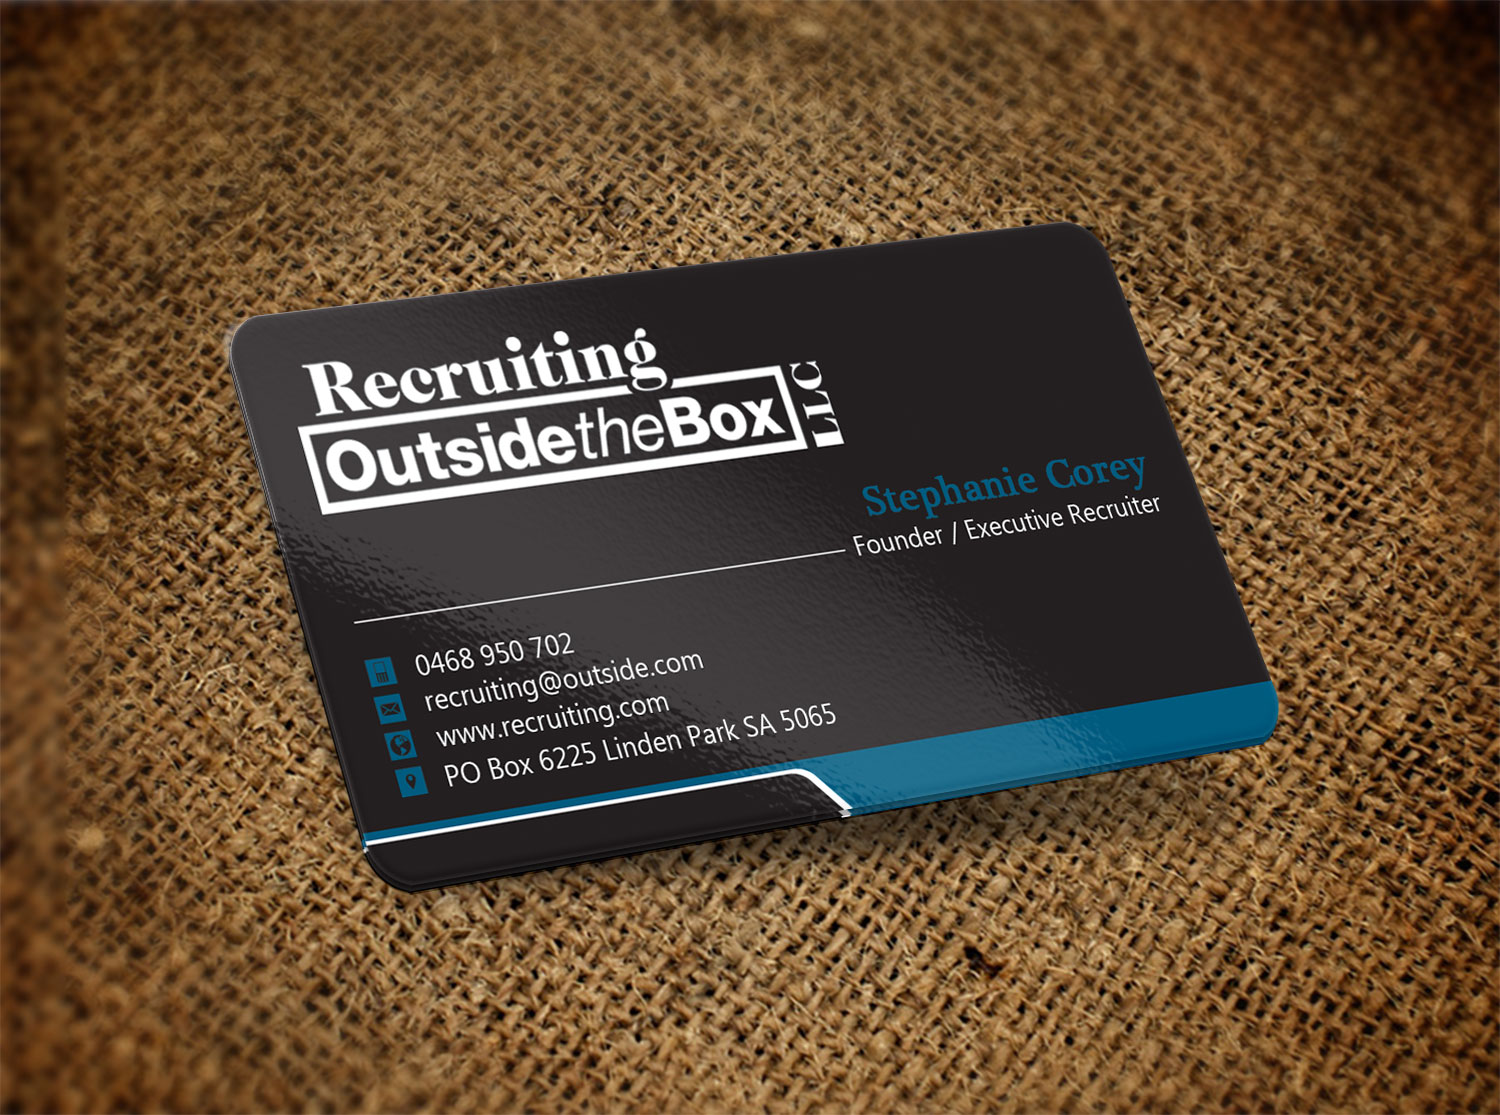 Business business card design for recruiting outside the box llc by business business card design for recruiting outside the box llc in united states design 10376347 colourmoves